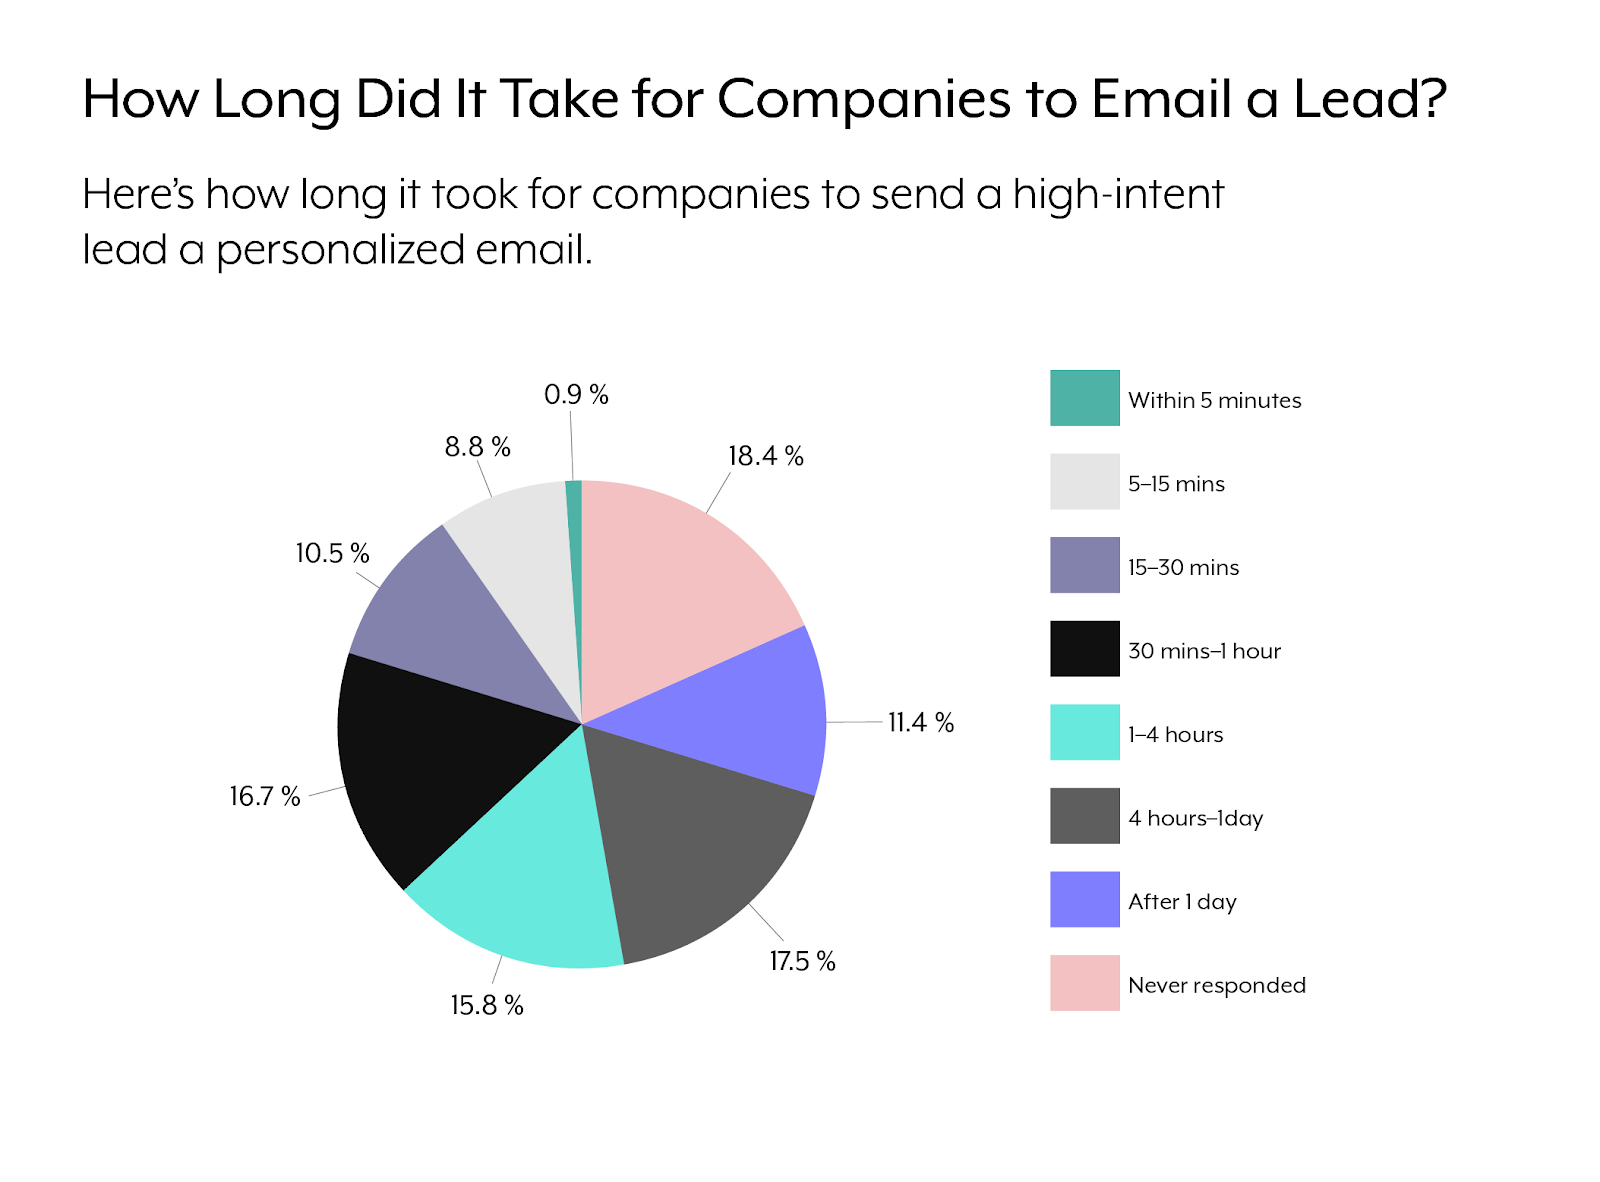 A pie chart that breaks down how quickly organizations email inbound leads.